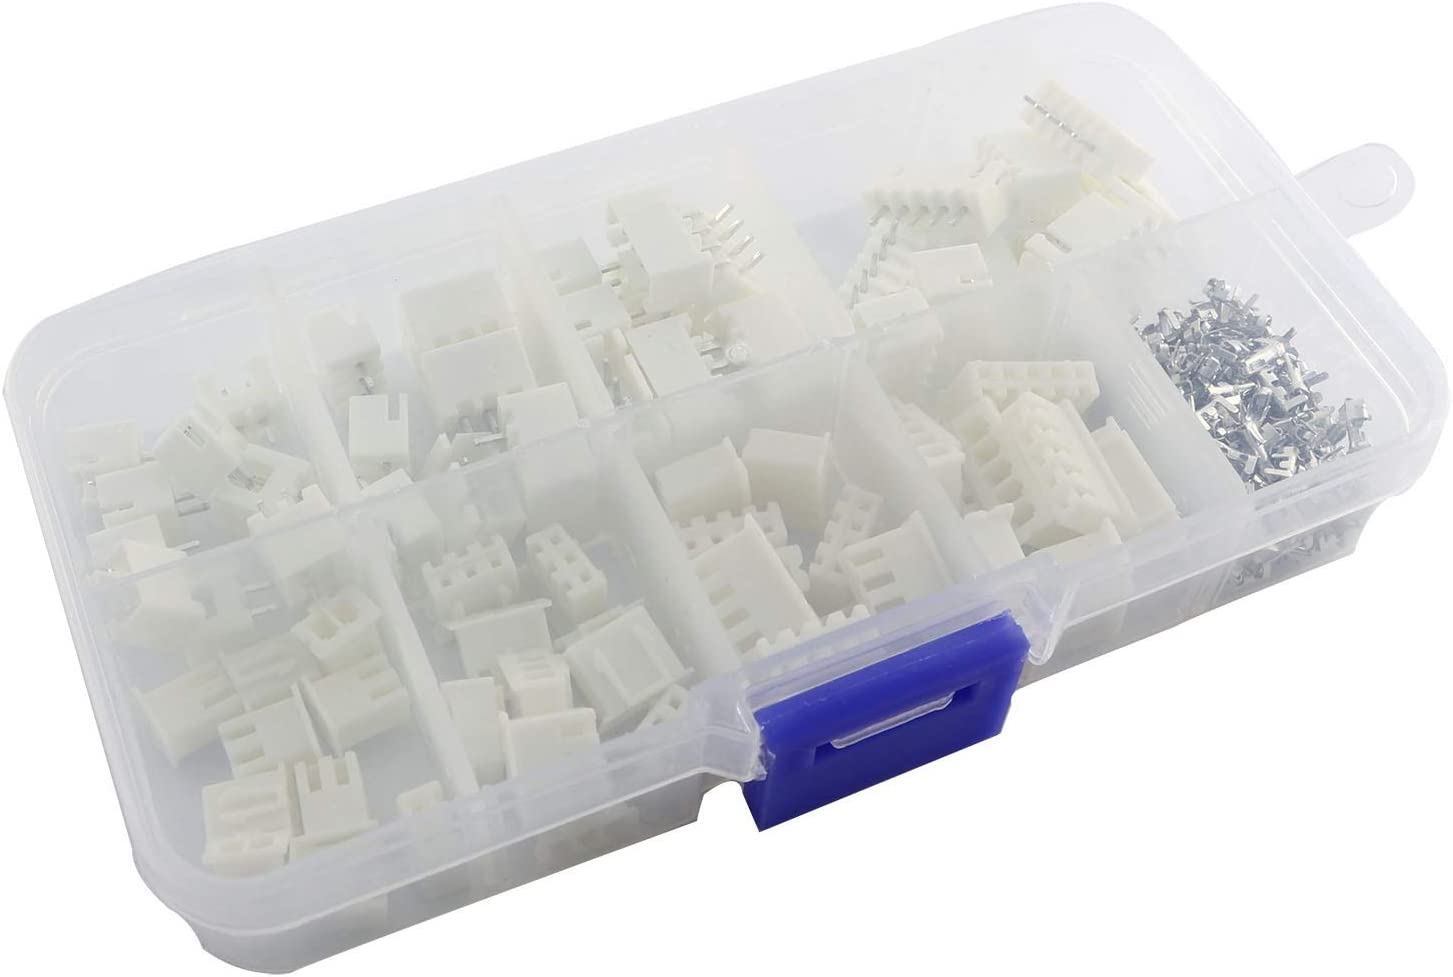 Partstock 230pcs XH 2.54mm 2/3/4/5 Pin JST Connector Male/Female Wire Cable Header Housing Adaptor Terminal Kit